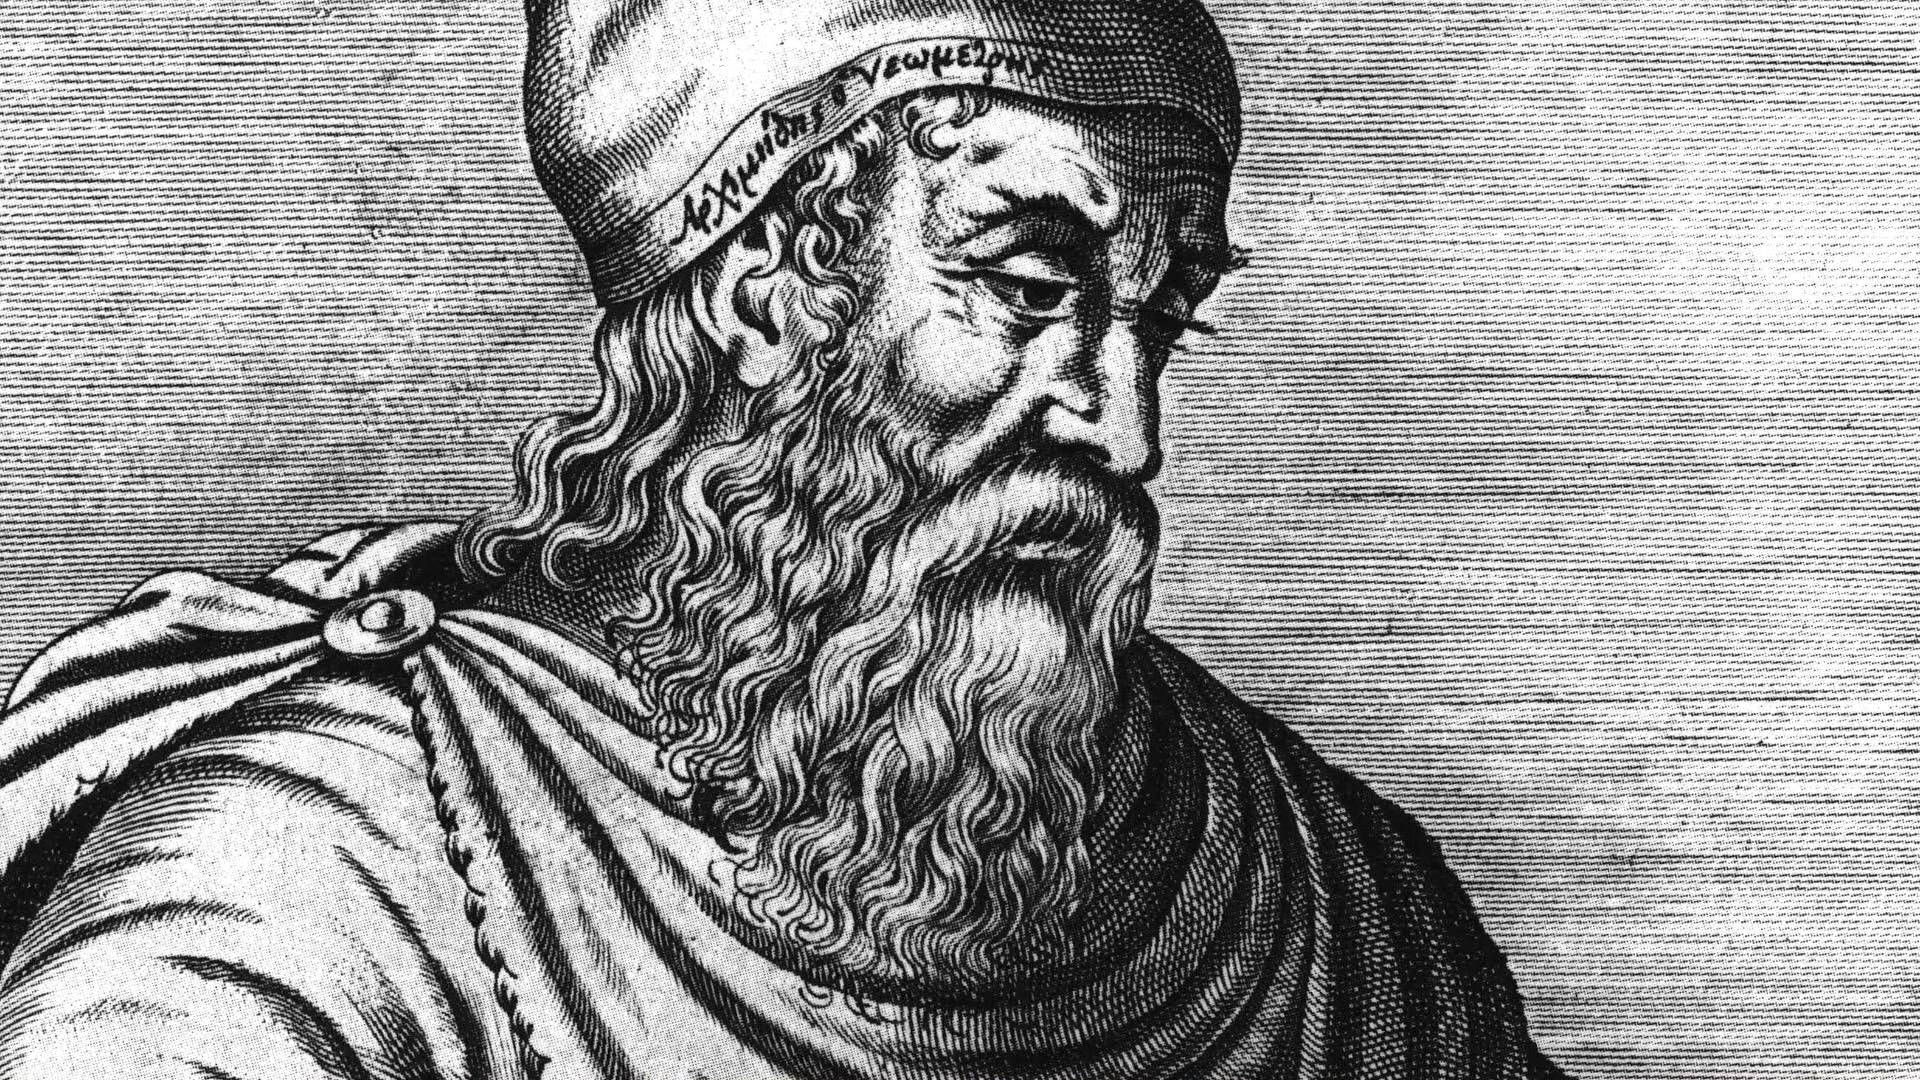 an analysis of archimedes Archimedes: archimedes, the most-famous mathematician and inventor in ancient greece which poses a problem in indeterminate analysis, with eight unknowns.